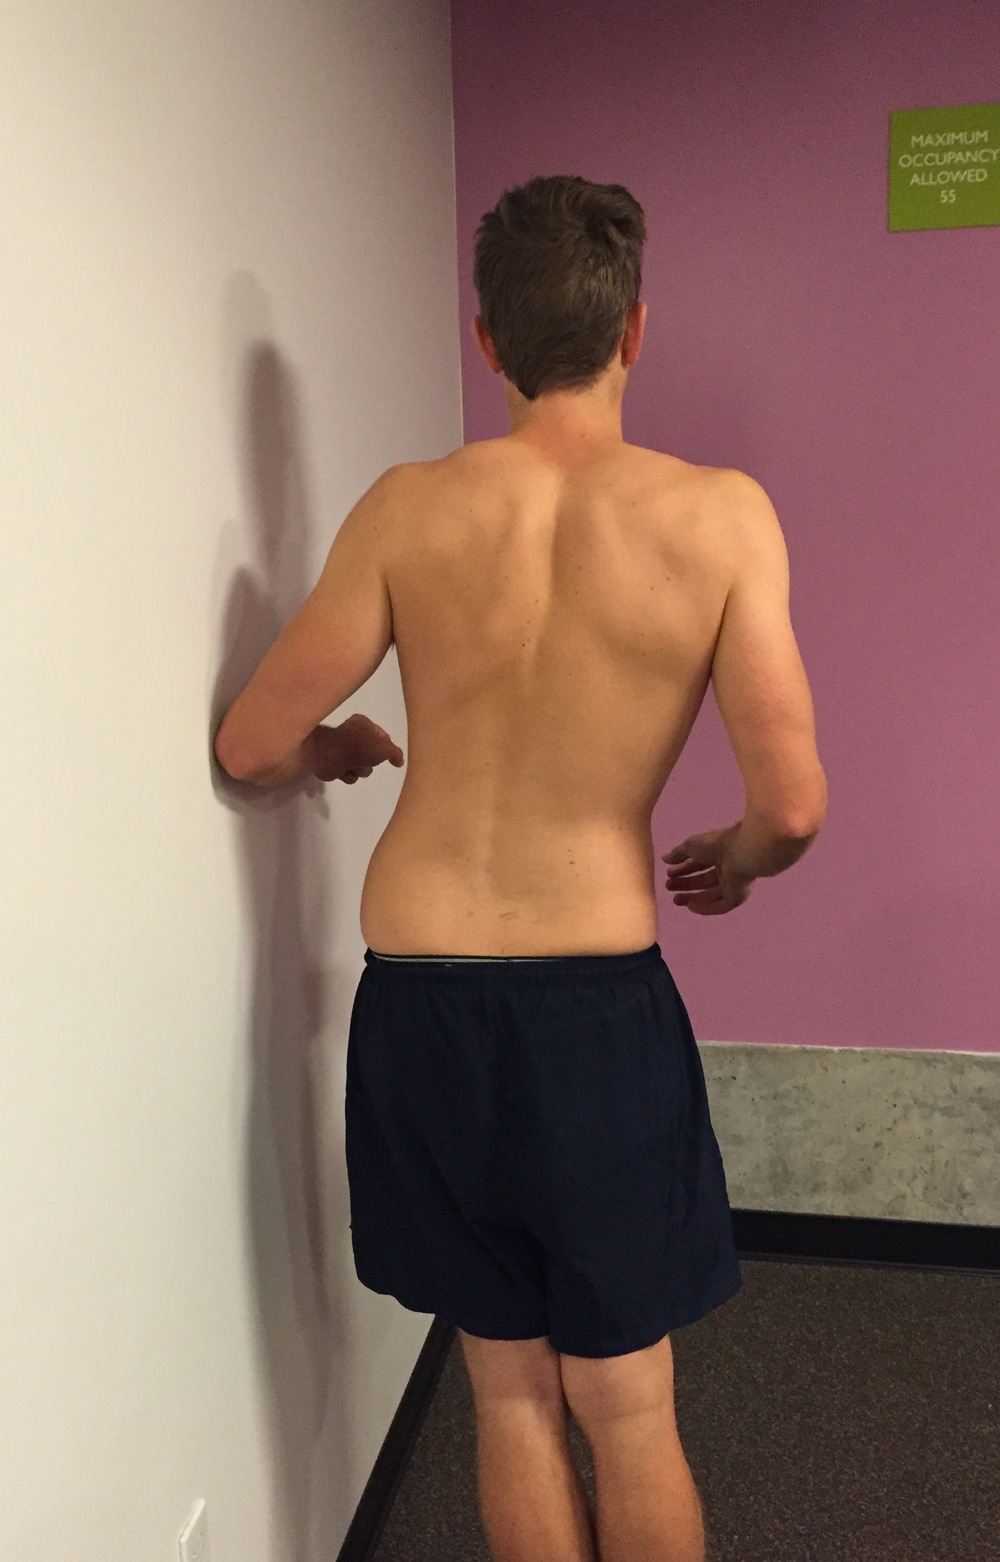 By placing the elbow against the wall it supports the trunk and allows the side gliding movement to be localised to the lumbar spine. Ask the patient to move their hips towards the wall stopping at the first point or discomfort or pain. Often on Day 1 this is only completed on one side.